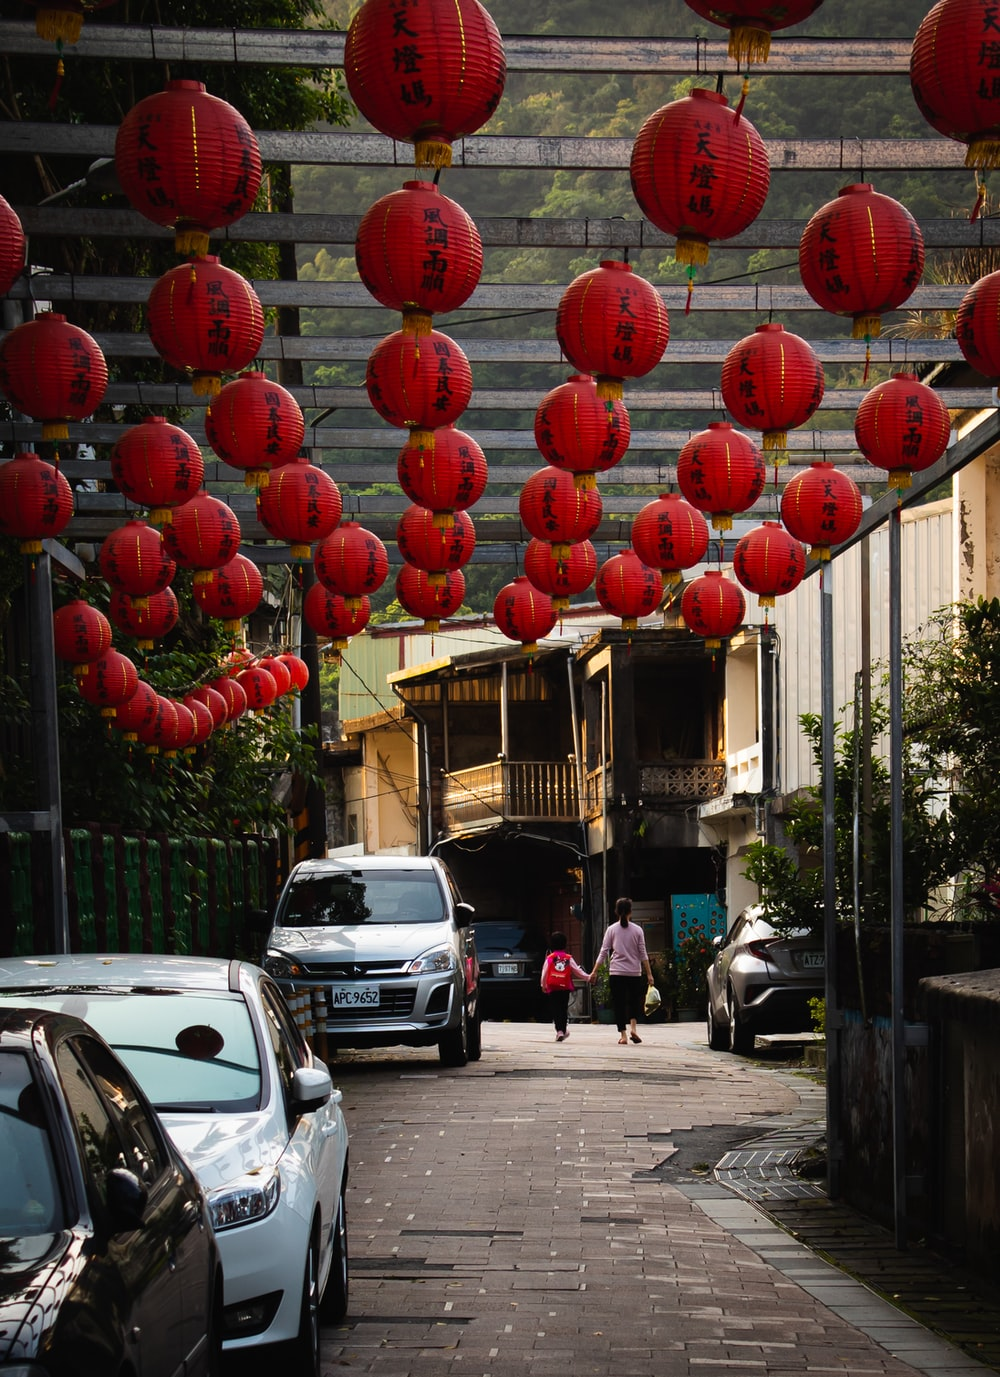 red round balloons on street during daytime